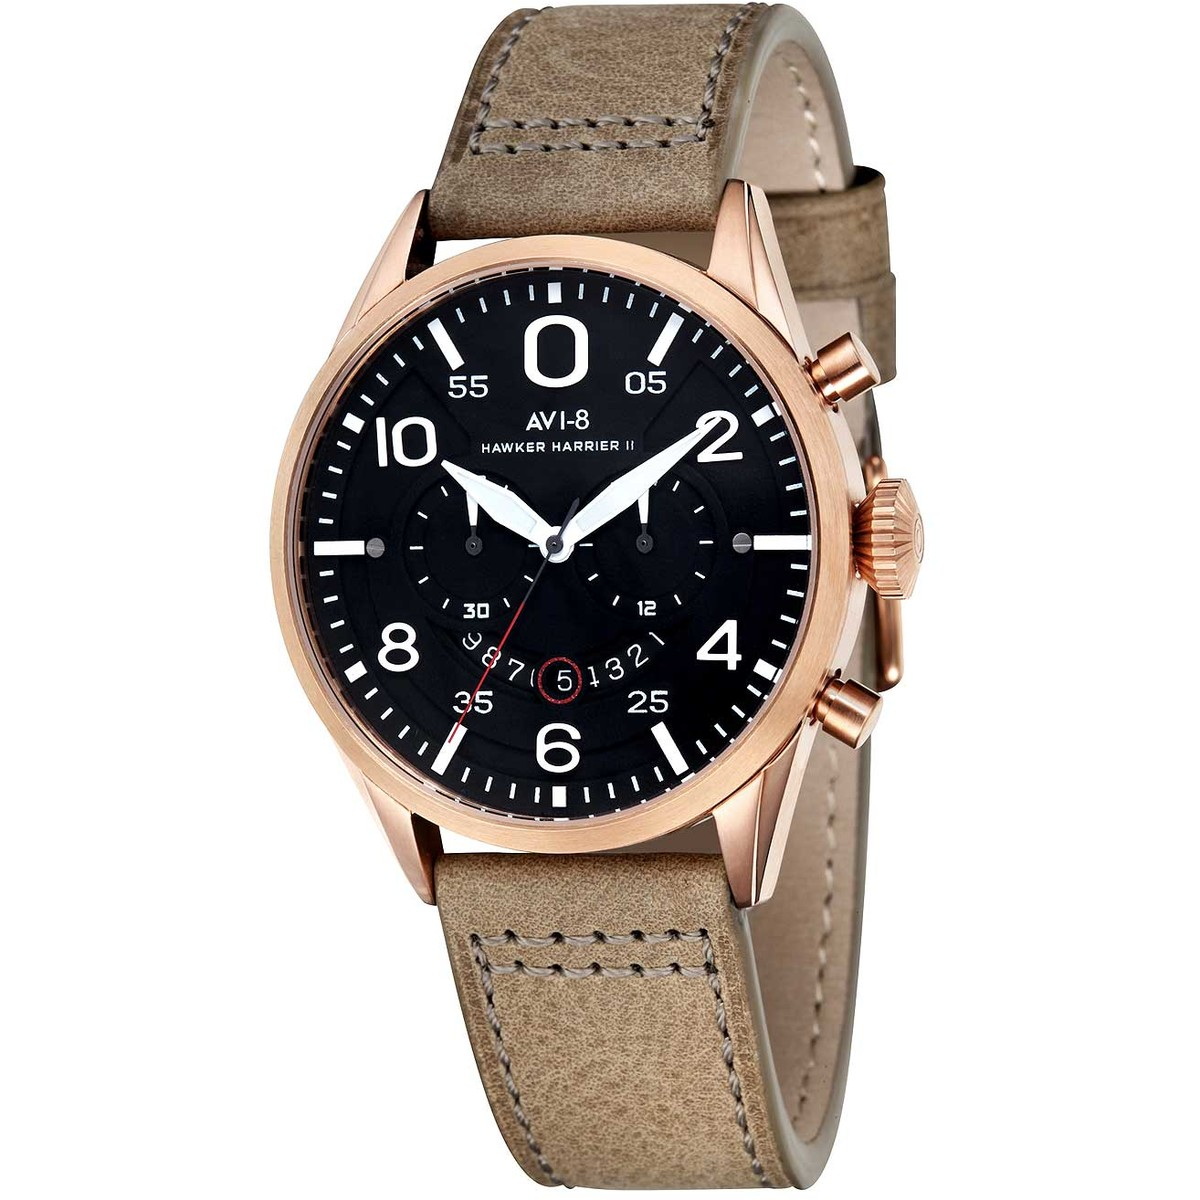 Ceas barbatesc AVI-8 Hawker Harrier II de mana original